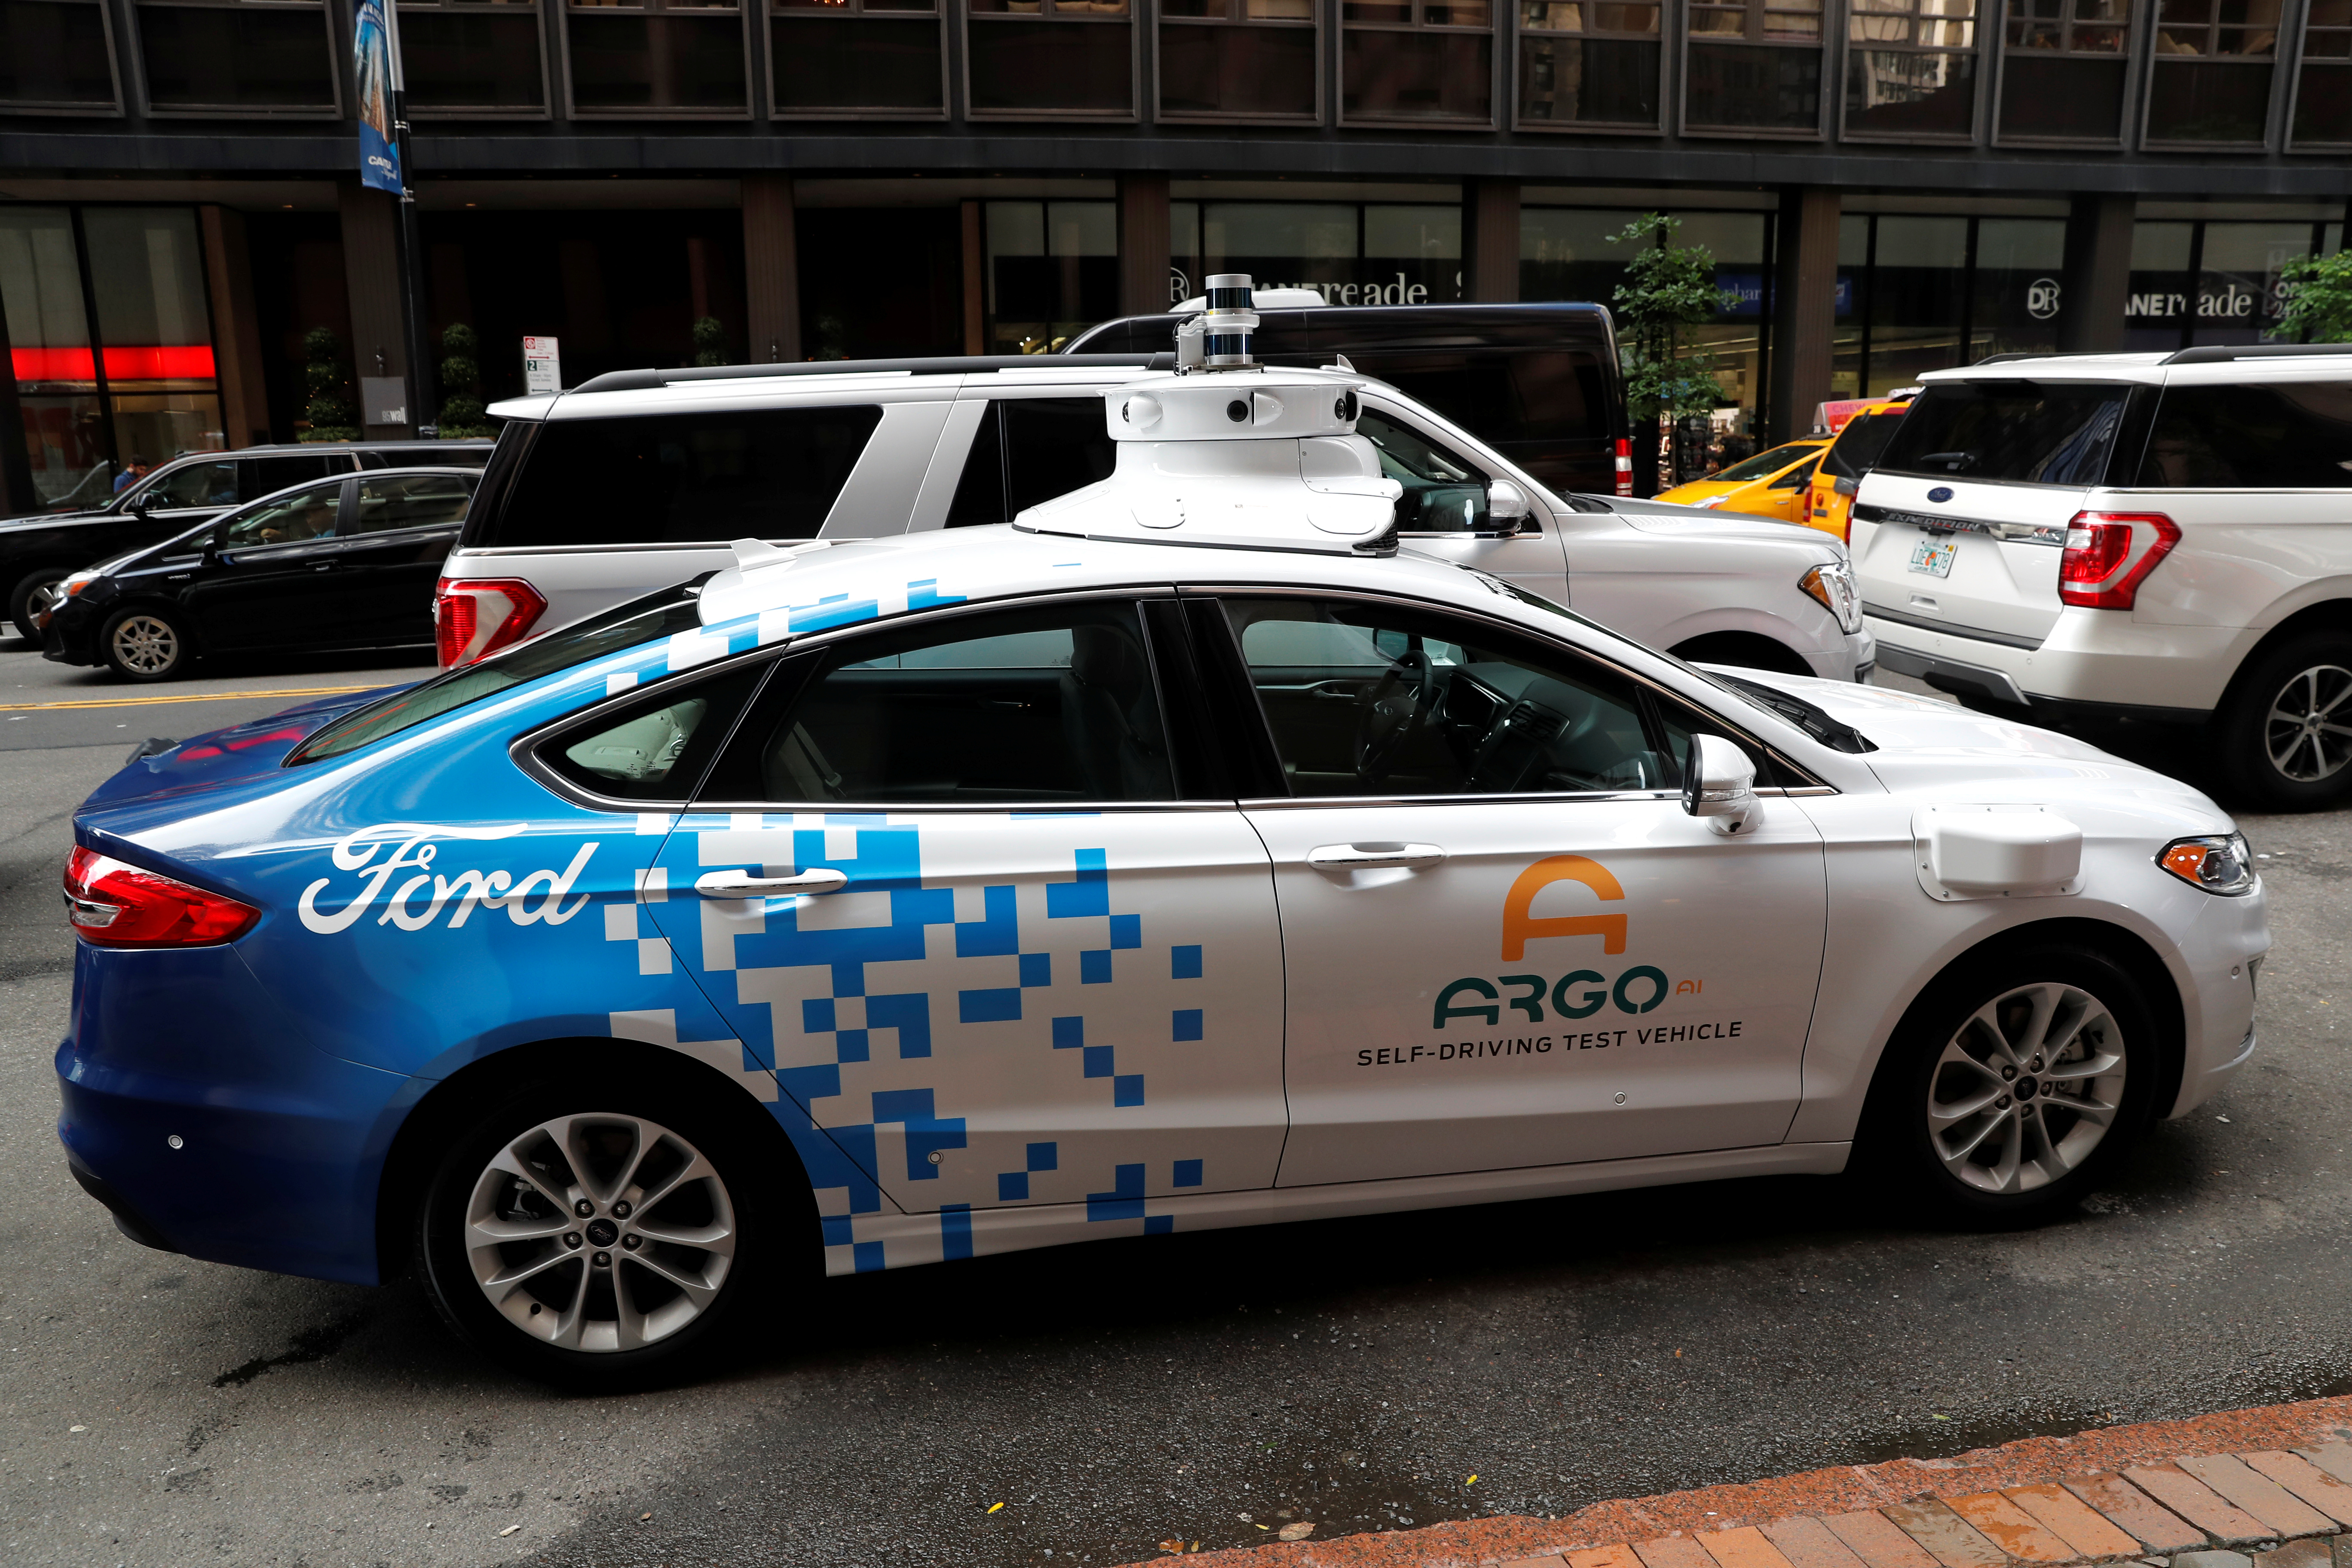 An Argo Ai self driving prototype vehicle is seen outside a Ford and Volkswagen joint news conference in New York City, New York, U.S., July 12, 2019. REUTERS/Mike Segar/Files